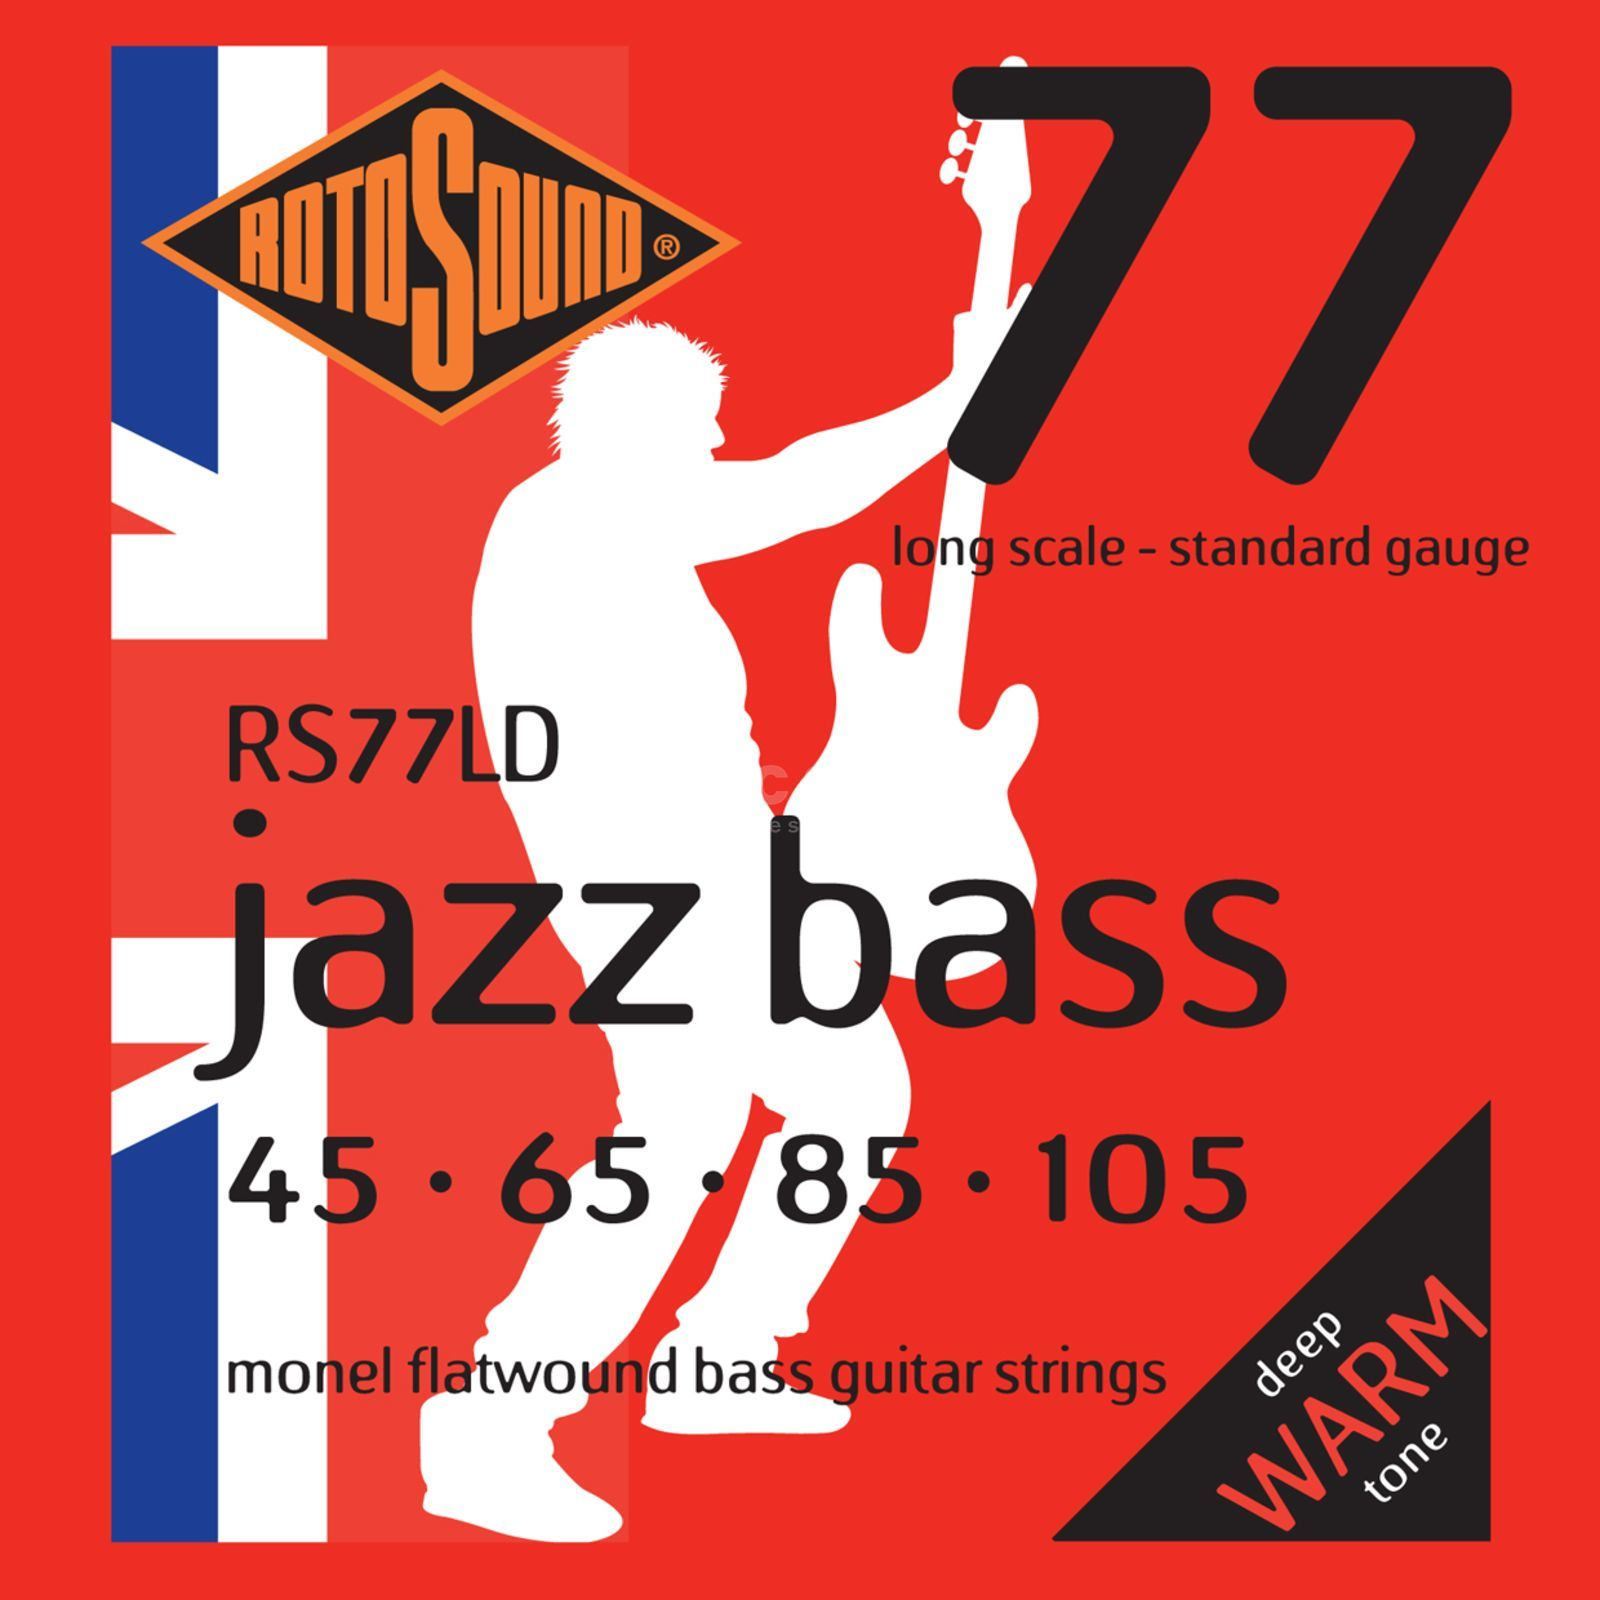 Rotosound Bass Strings,45-105,Flat  Product Image